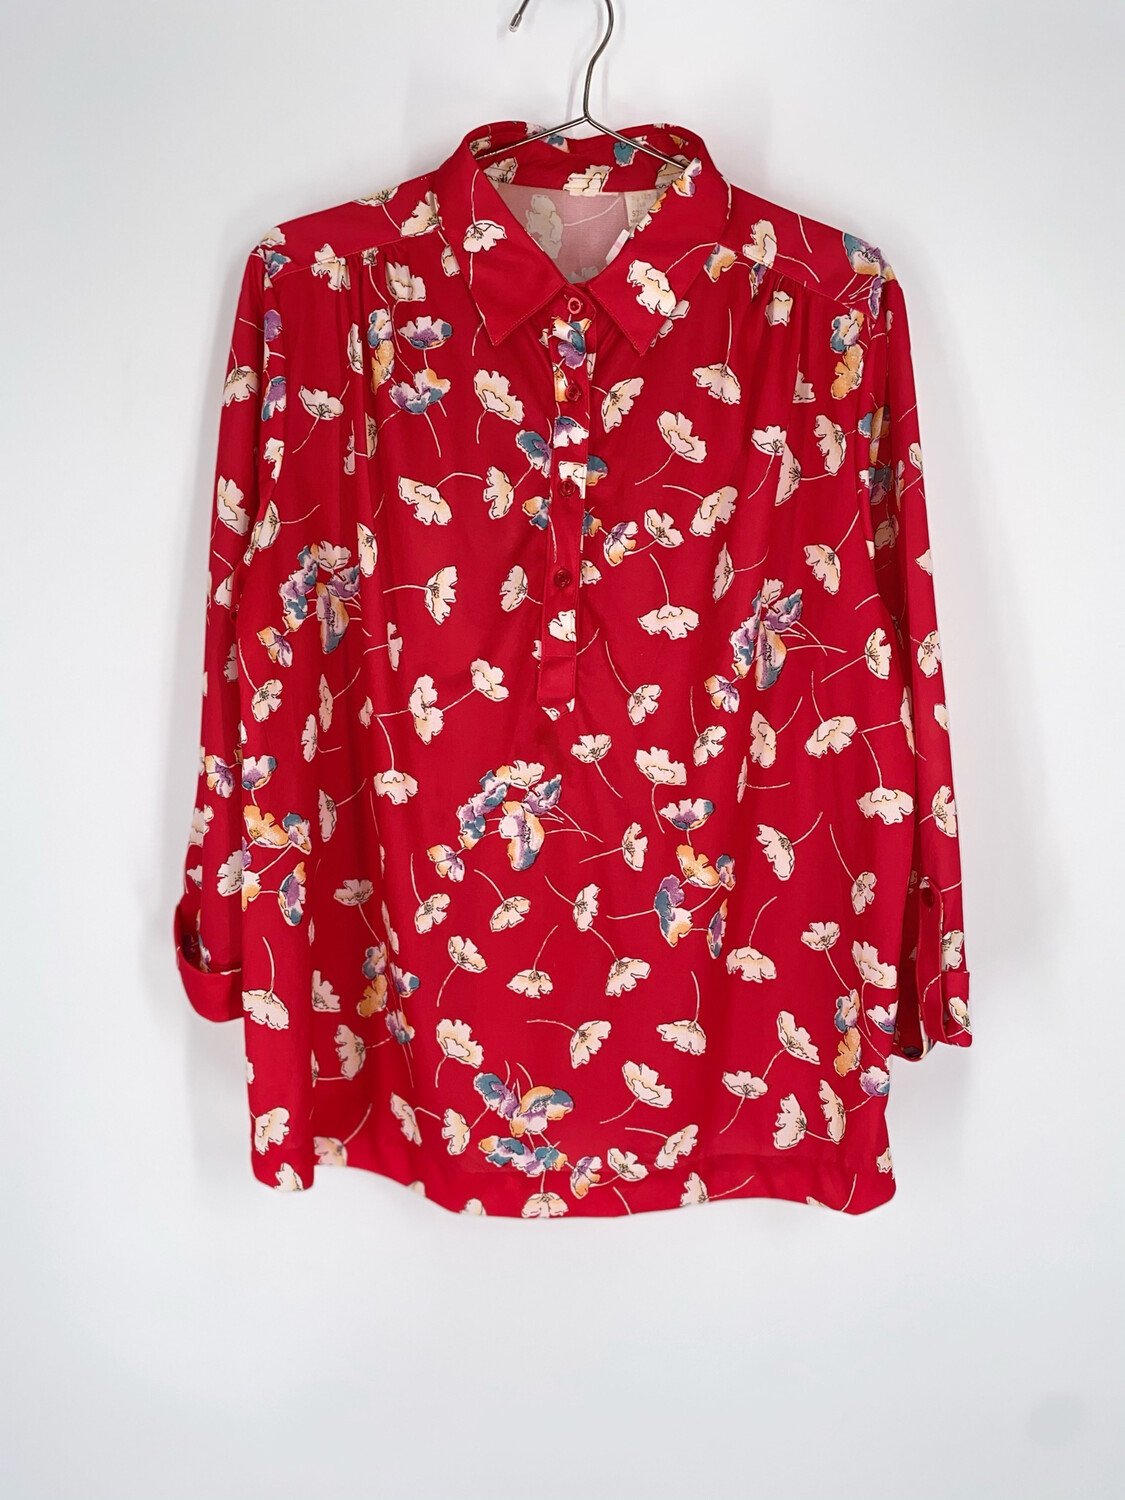 Red Floral Button Up Top Size L